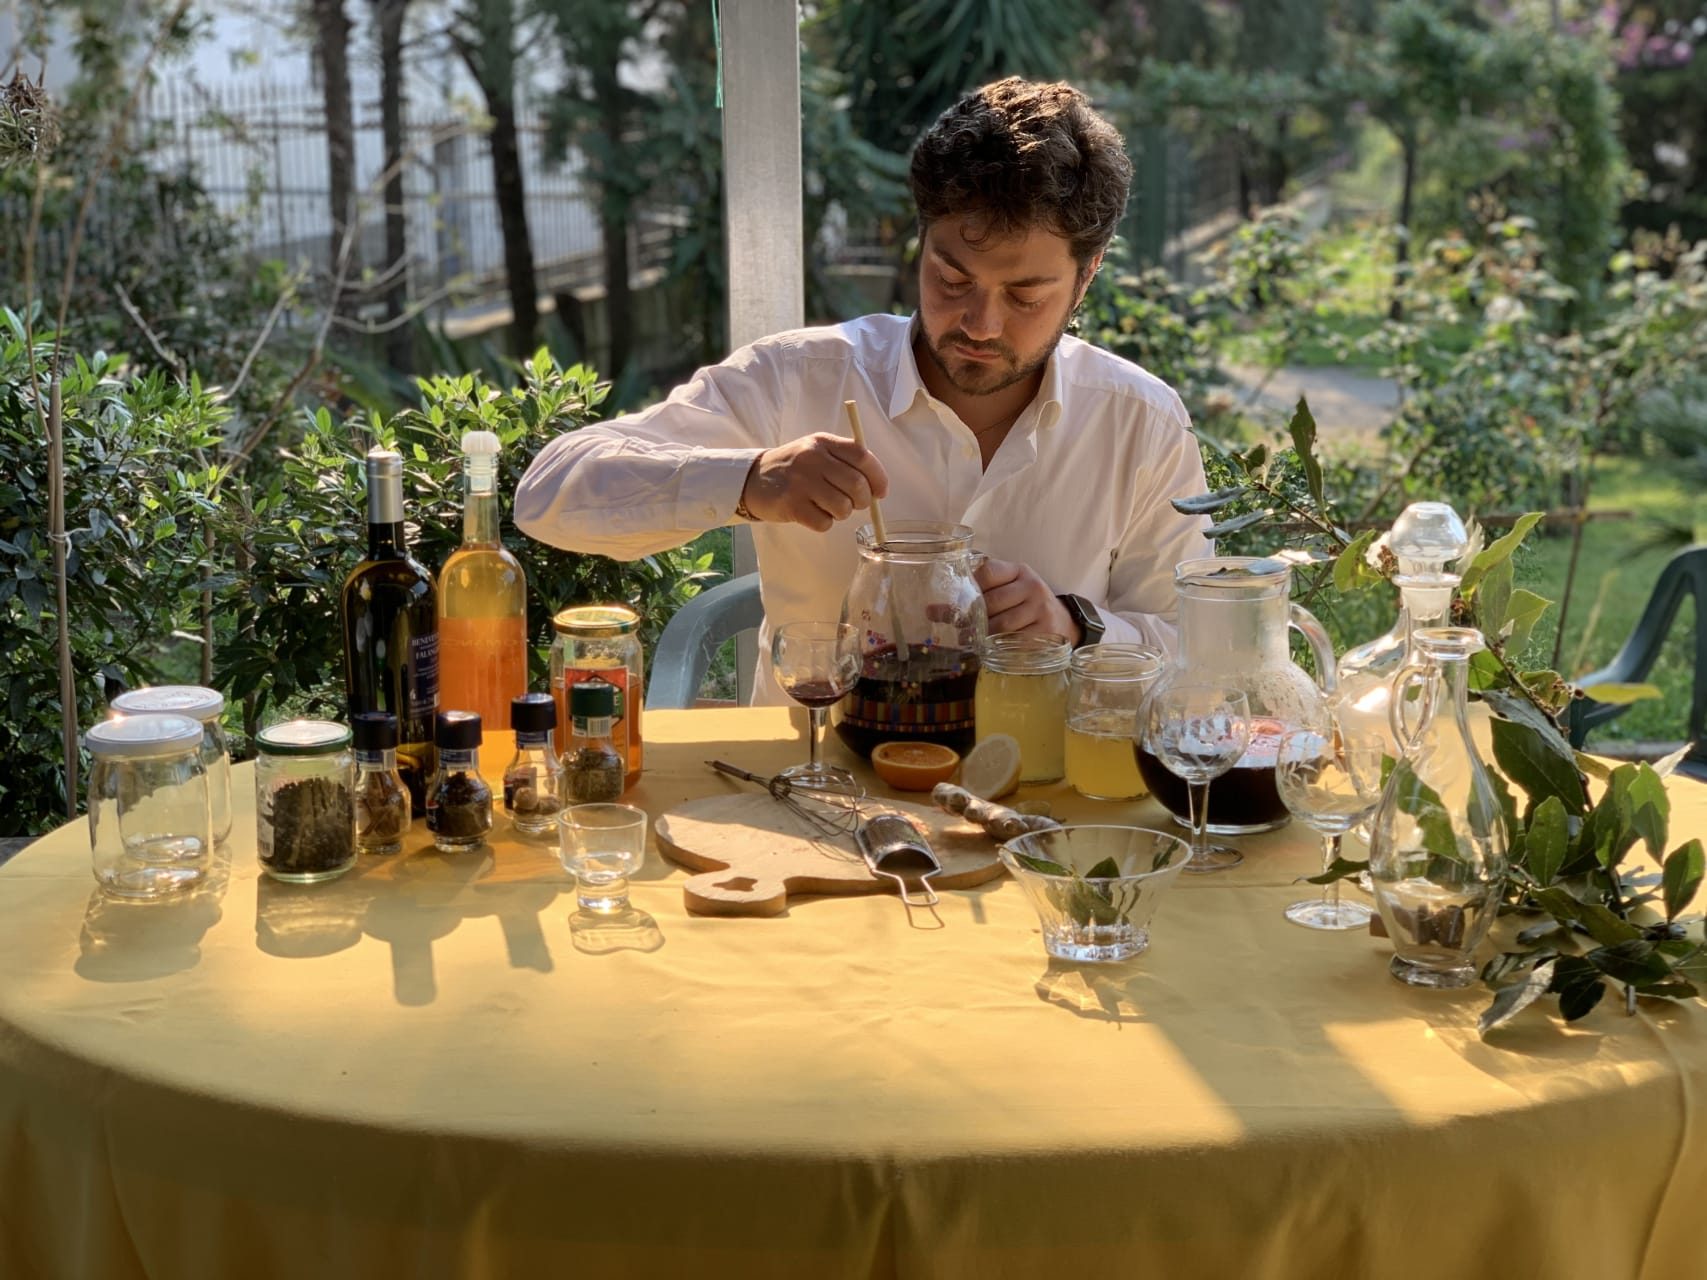 Naples - Ancient Spiced Wines Class with an Archaeologist